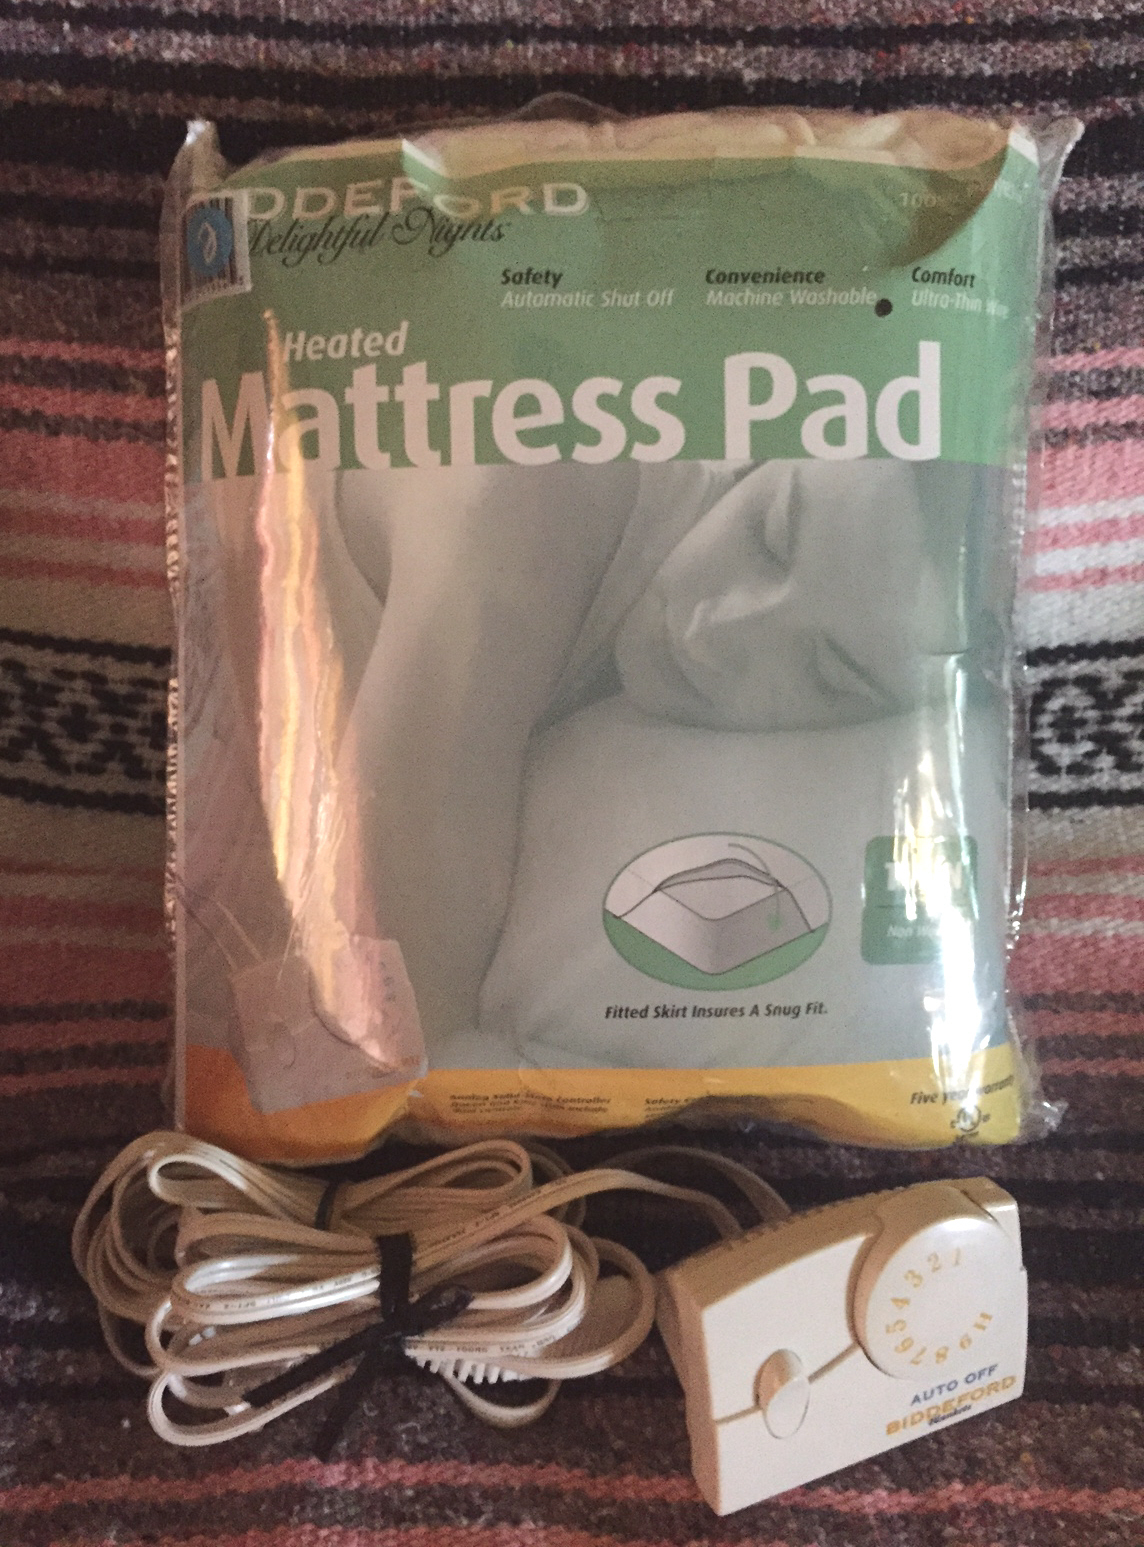 Electric heated mattress pad by Biddeford Delightful Nights twin size bed warmer